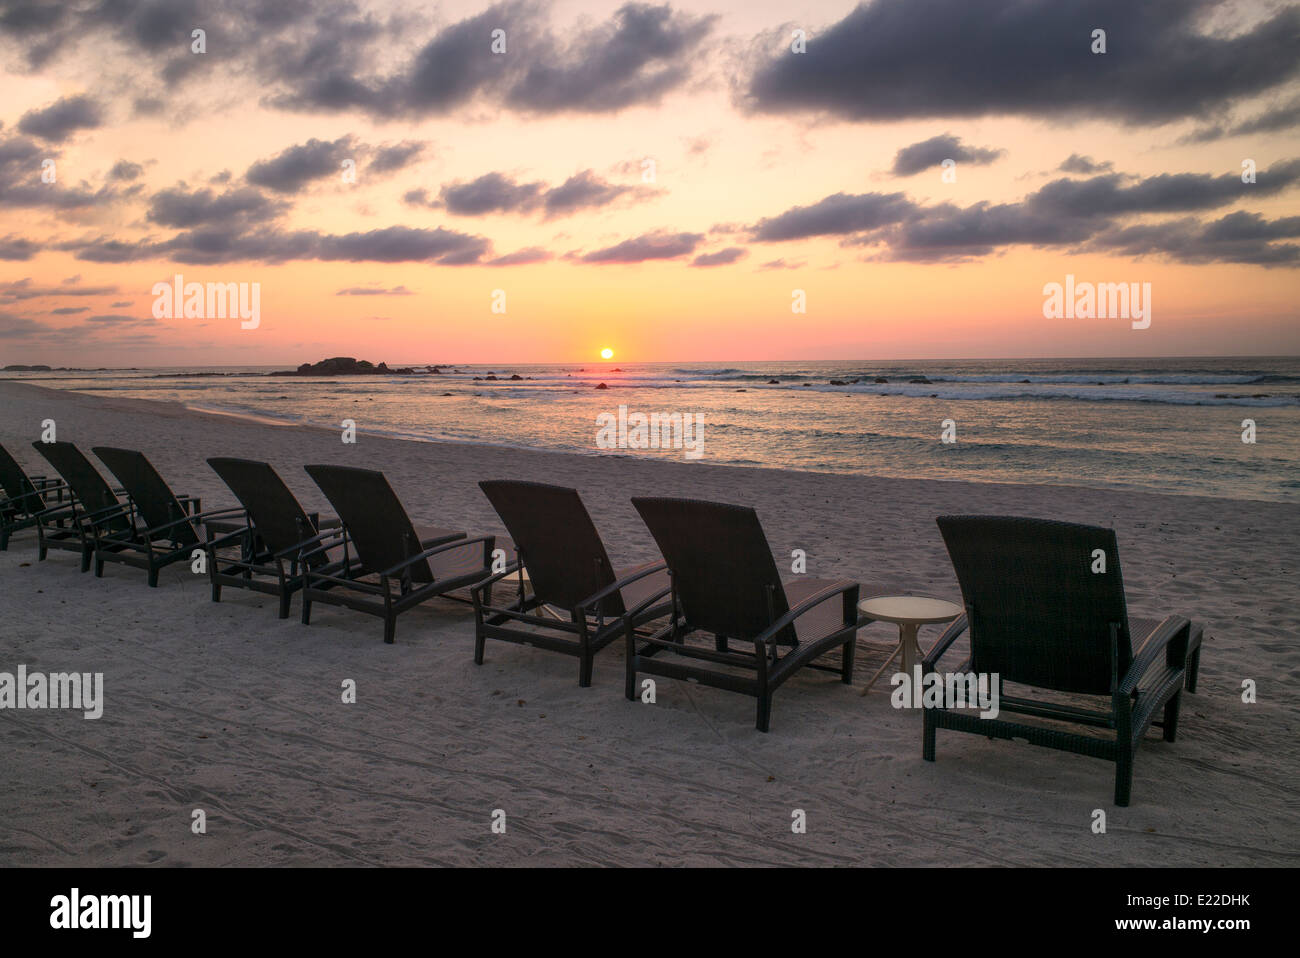 Sunset on beach with beach chairs at Punta Mita, Mexico. - Stock Image